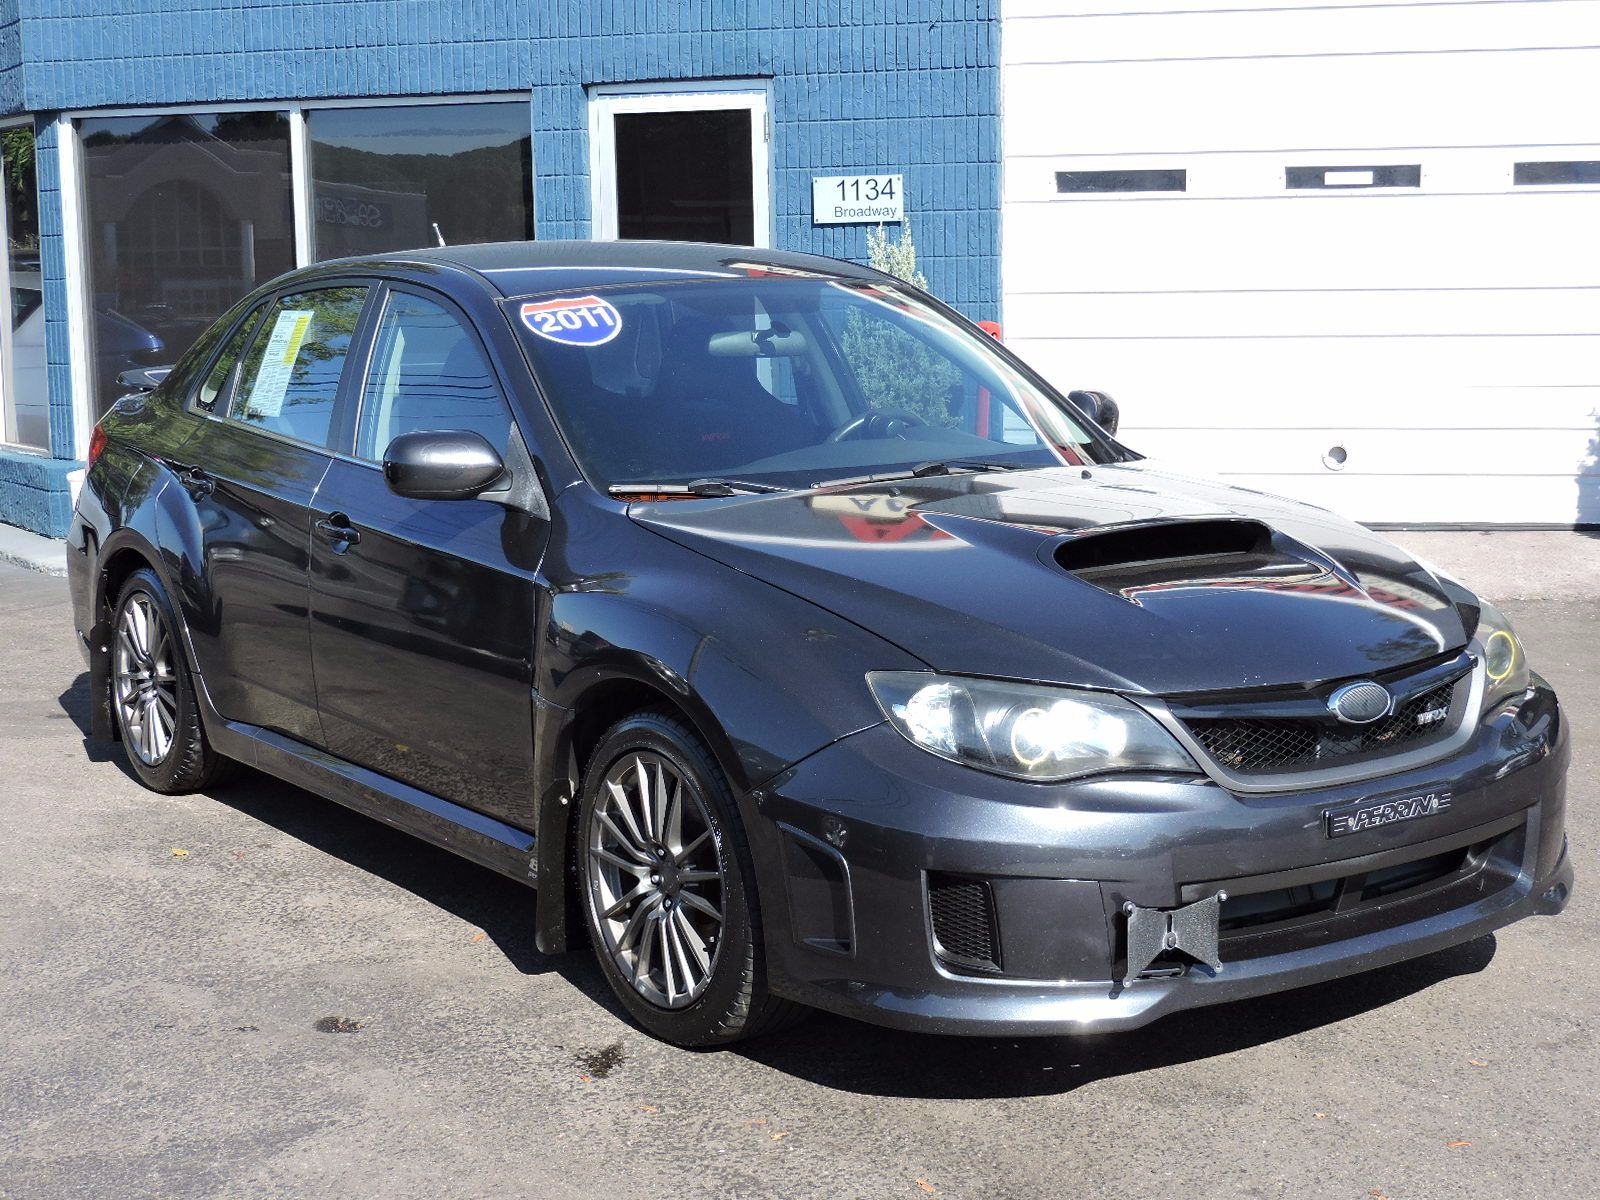 used 2011 subaru impreza wrx wrx at auto house usa saugus. Black Bedroom Furniture Sets. Home Design Ideas